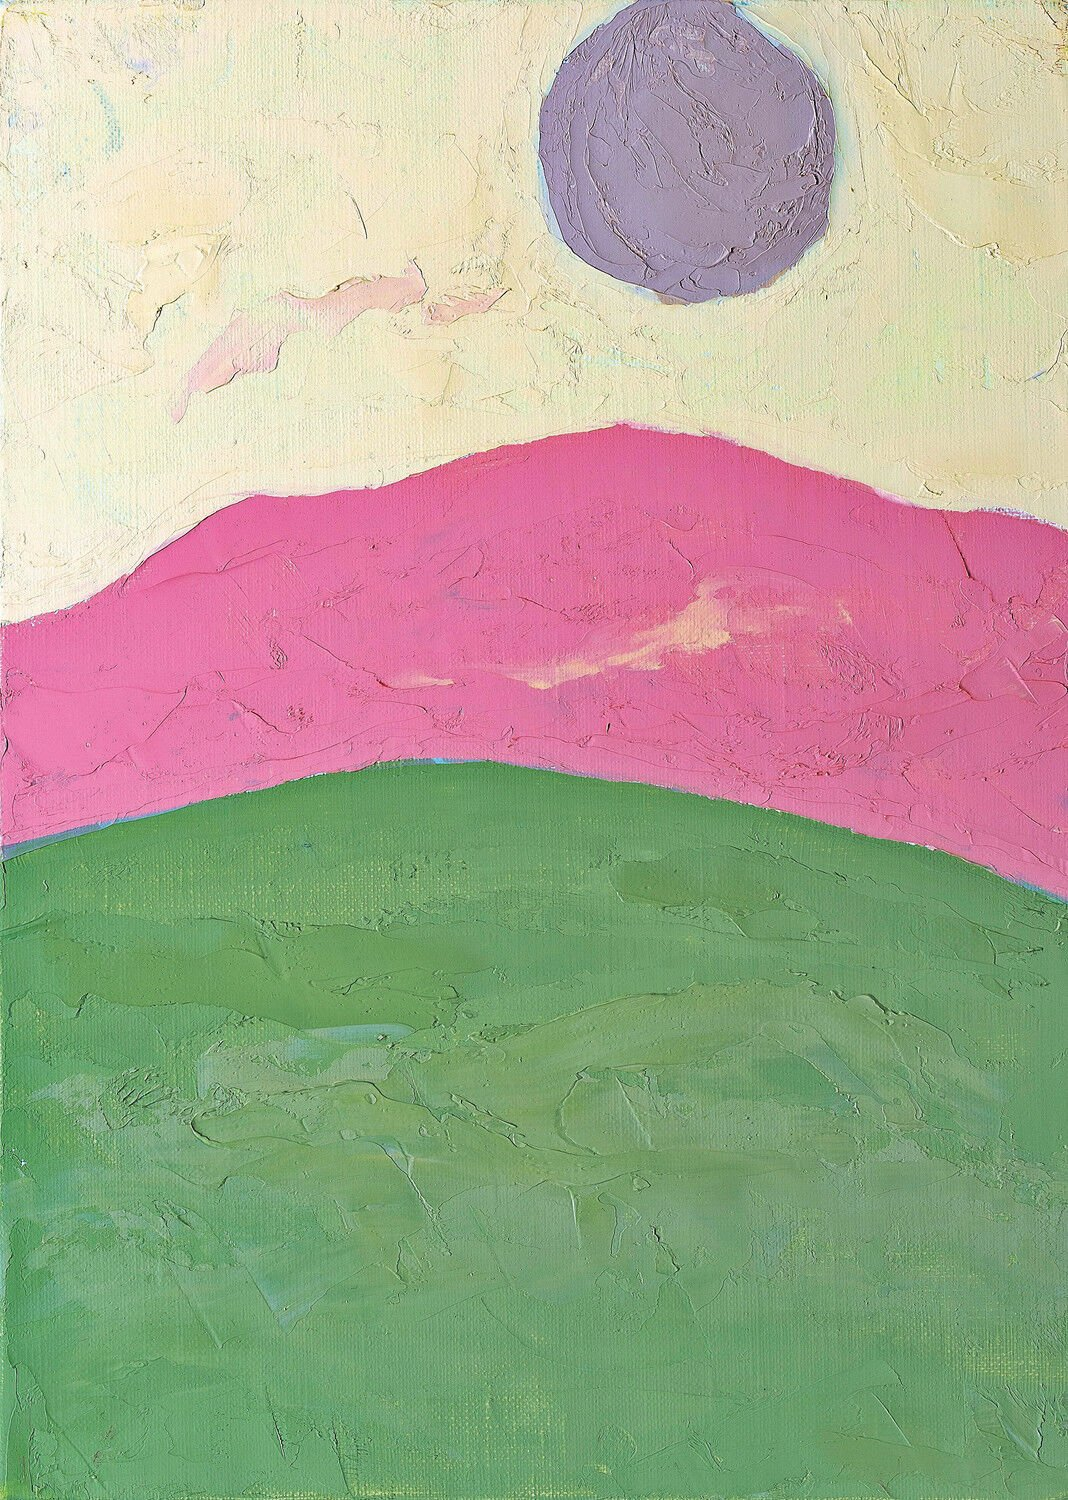 New exhibit at Mass MoCA gathers the many sides of Etel Adnan into a whole